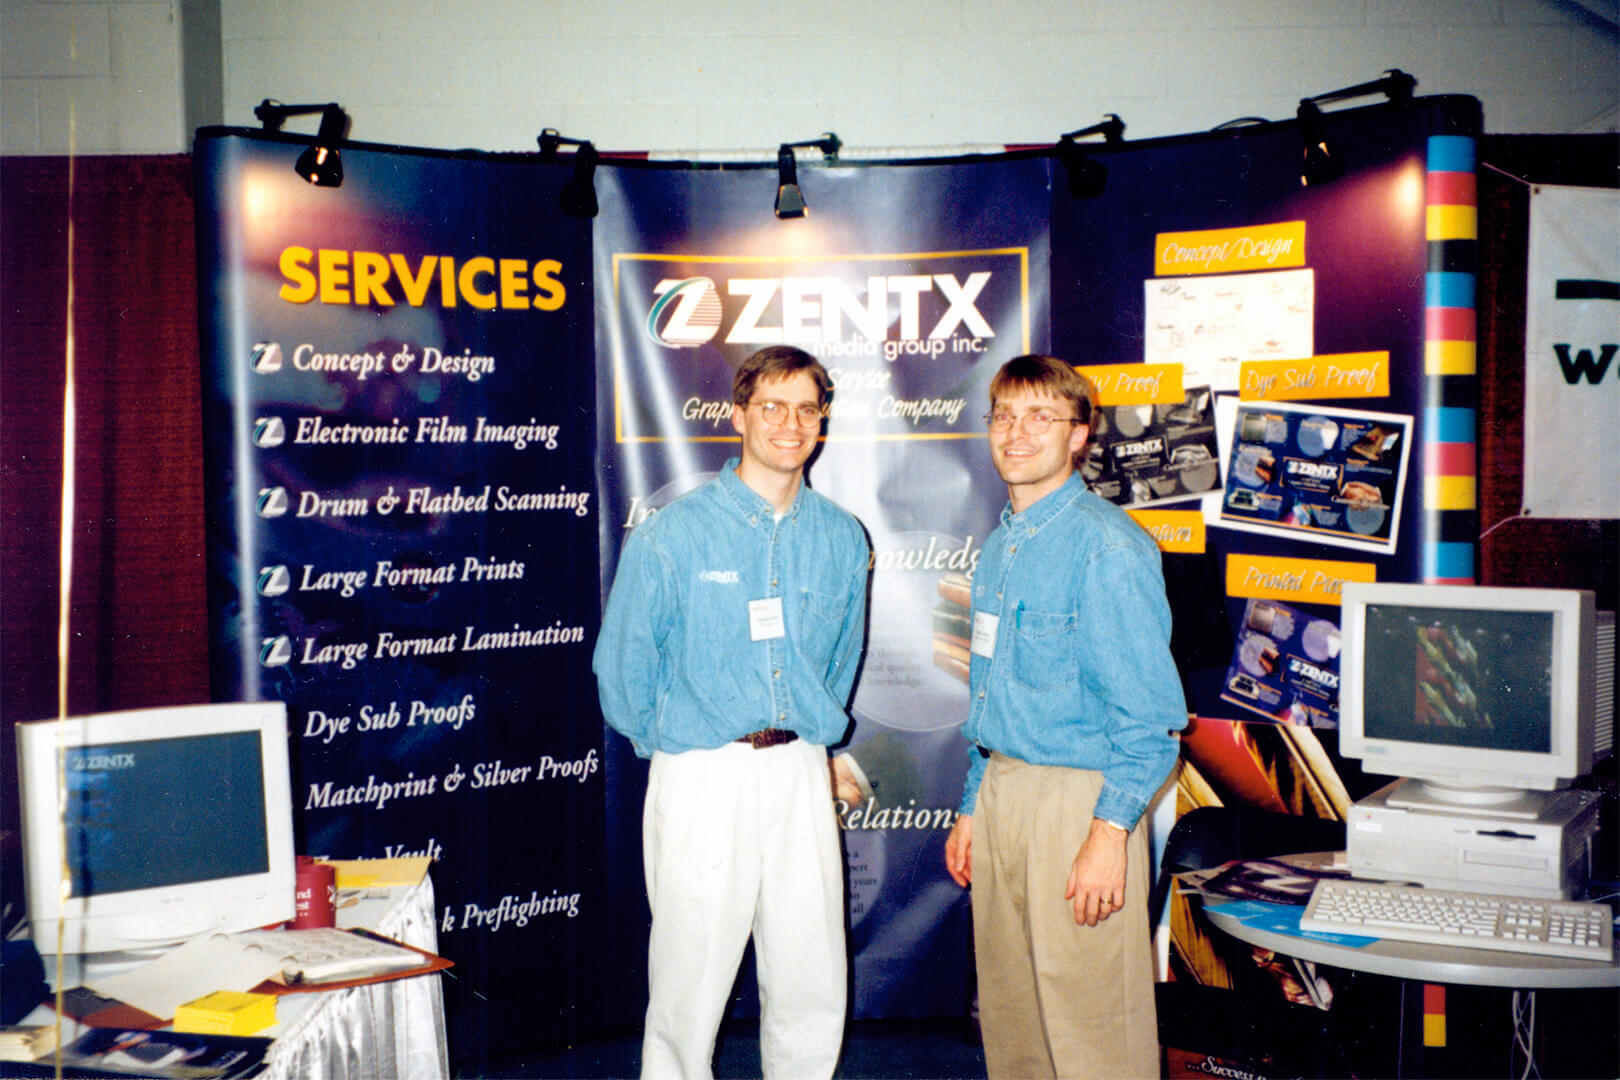 Mark and Mike Wenz standing in front of ZENTX's trade show booth